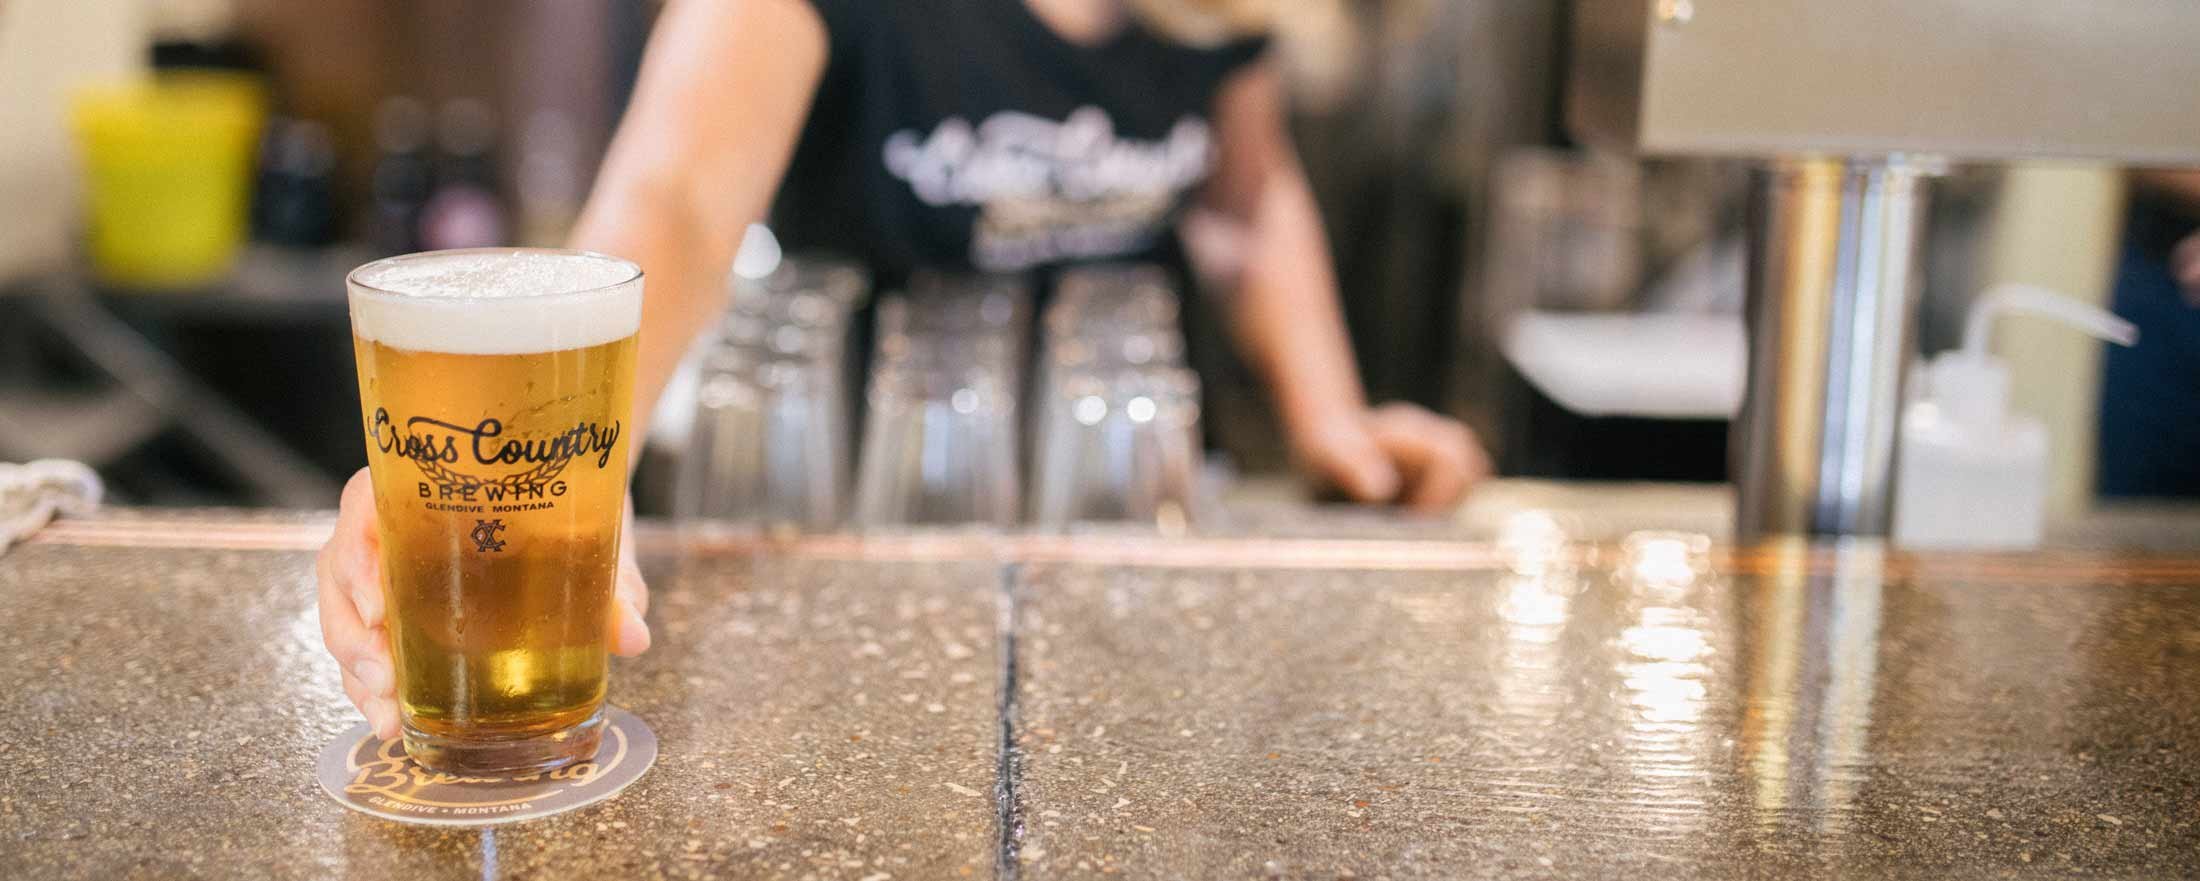 Un-beer-lievable Breweries in Southeast Montana